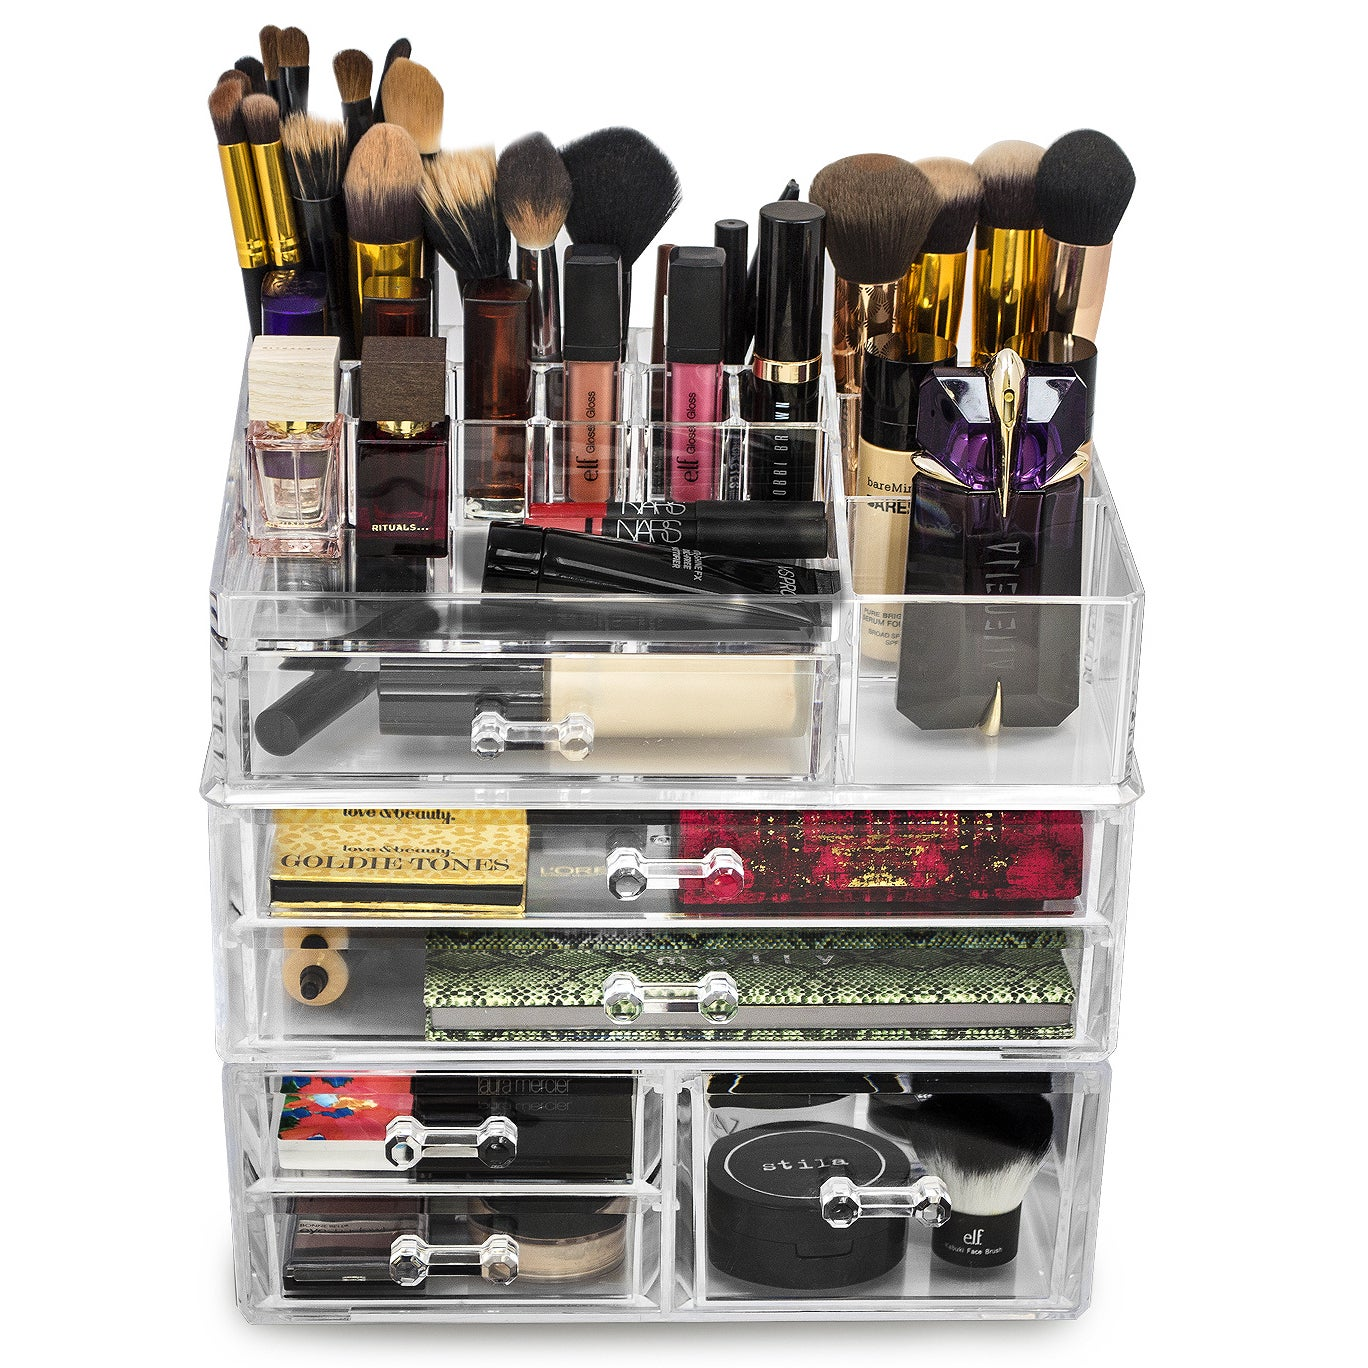 Shop Large Acrylic Drawers with 15-section Makeup Organizer - Free Shipping On Orders Over $45 - Overstock - 11735948